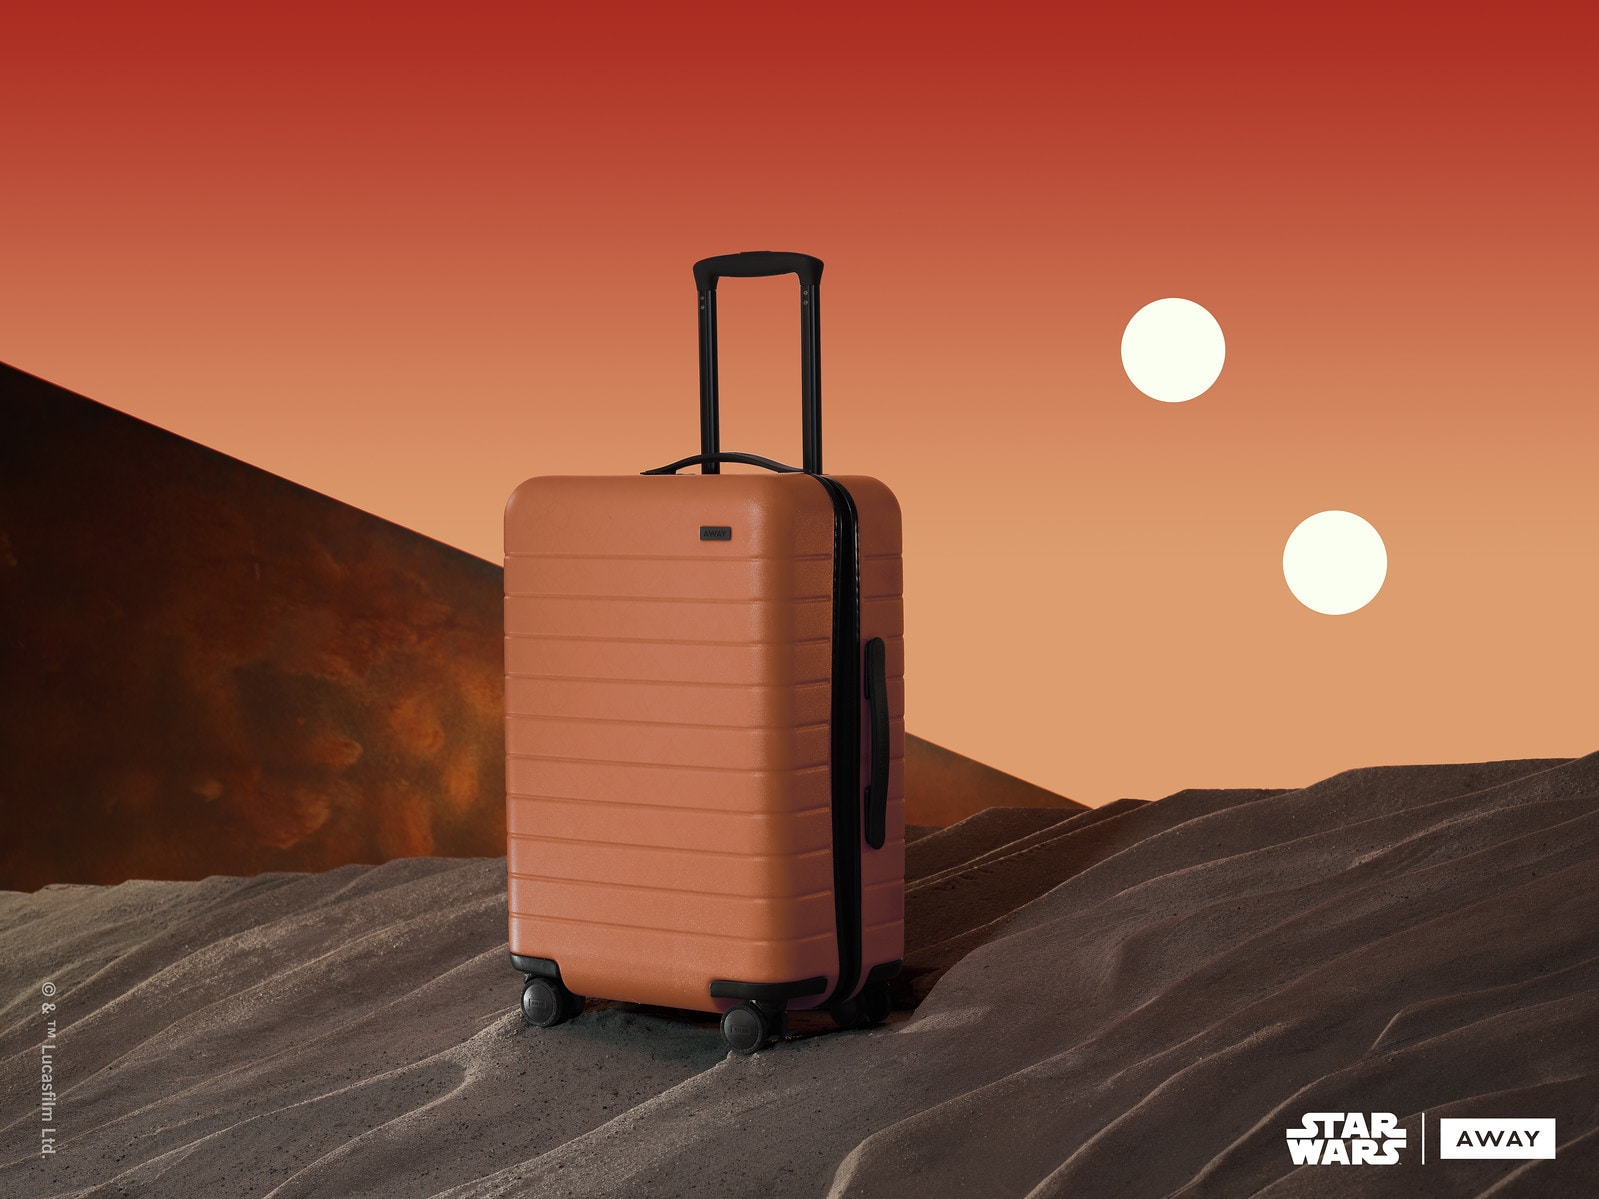 Orange Away suitcase inspired by Tatoonie from the Star Wars collection